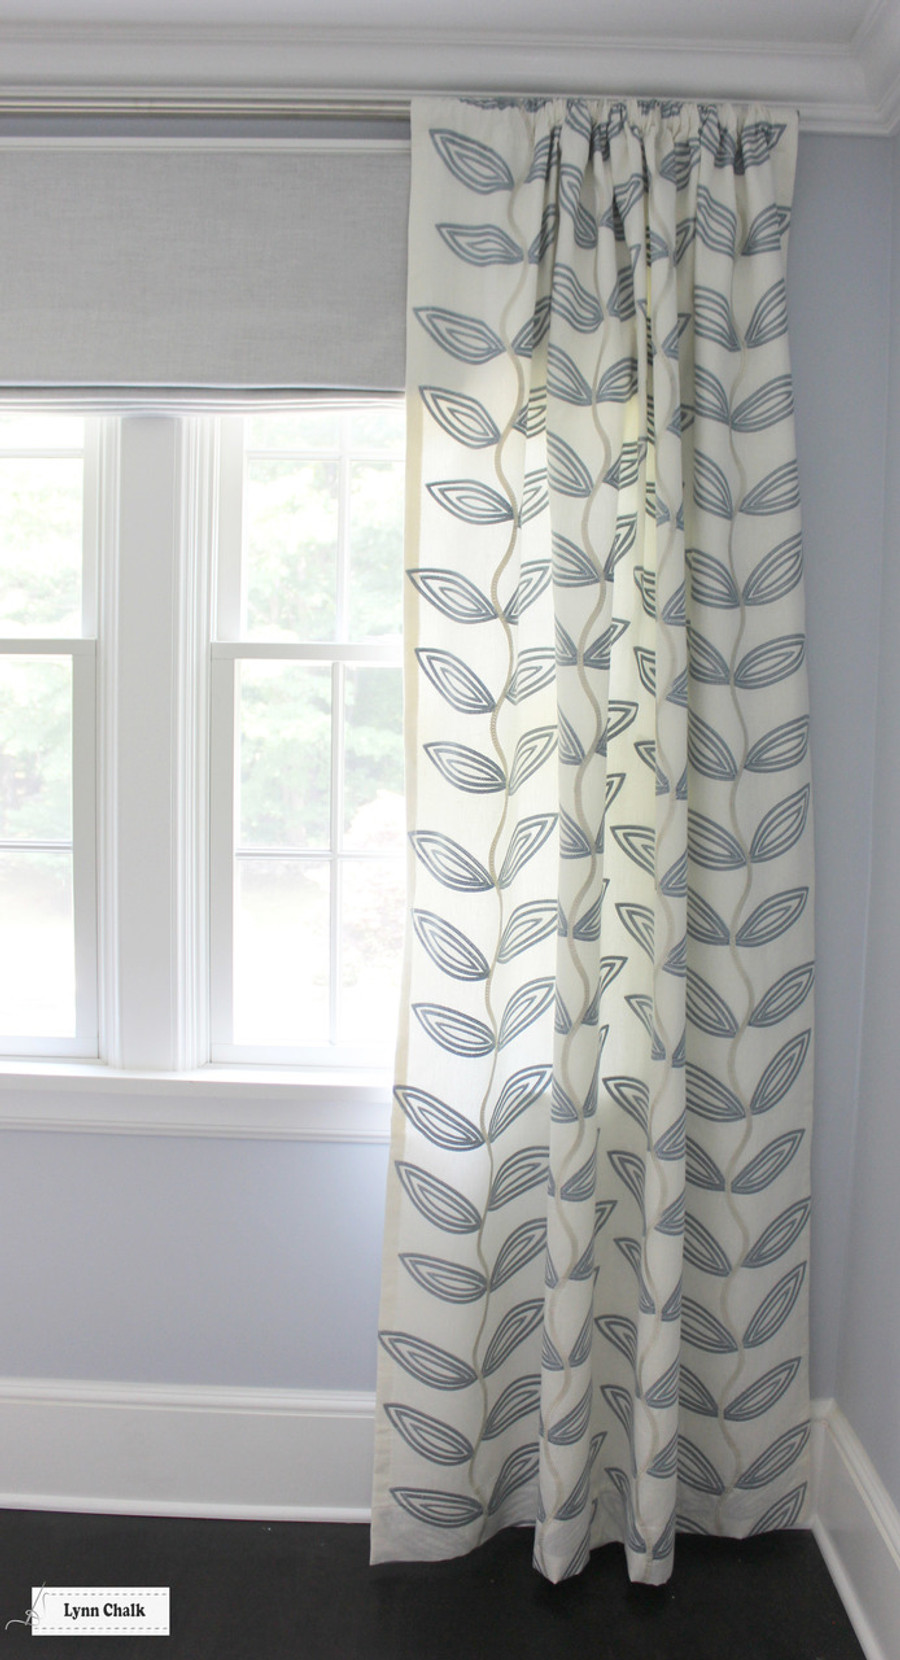 Manuel Canovas Fiesta Ceil Drapes with Roman Shades in Holly Hunt Clear The Air Slate